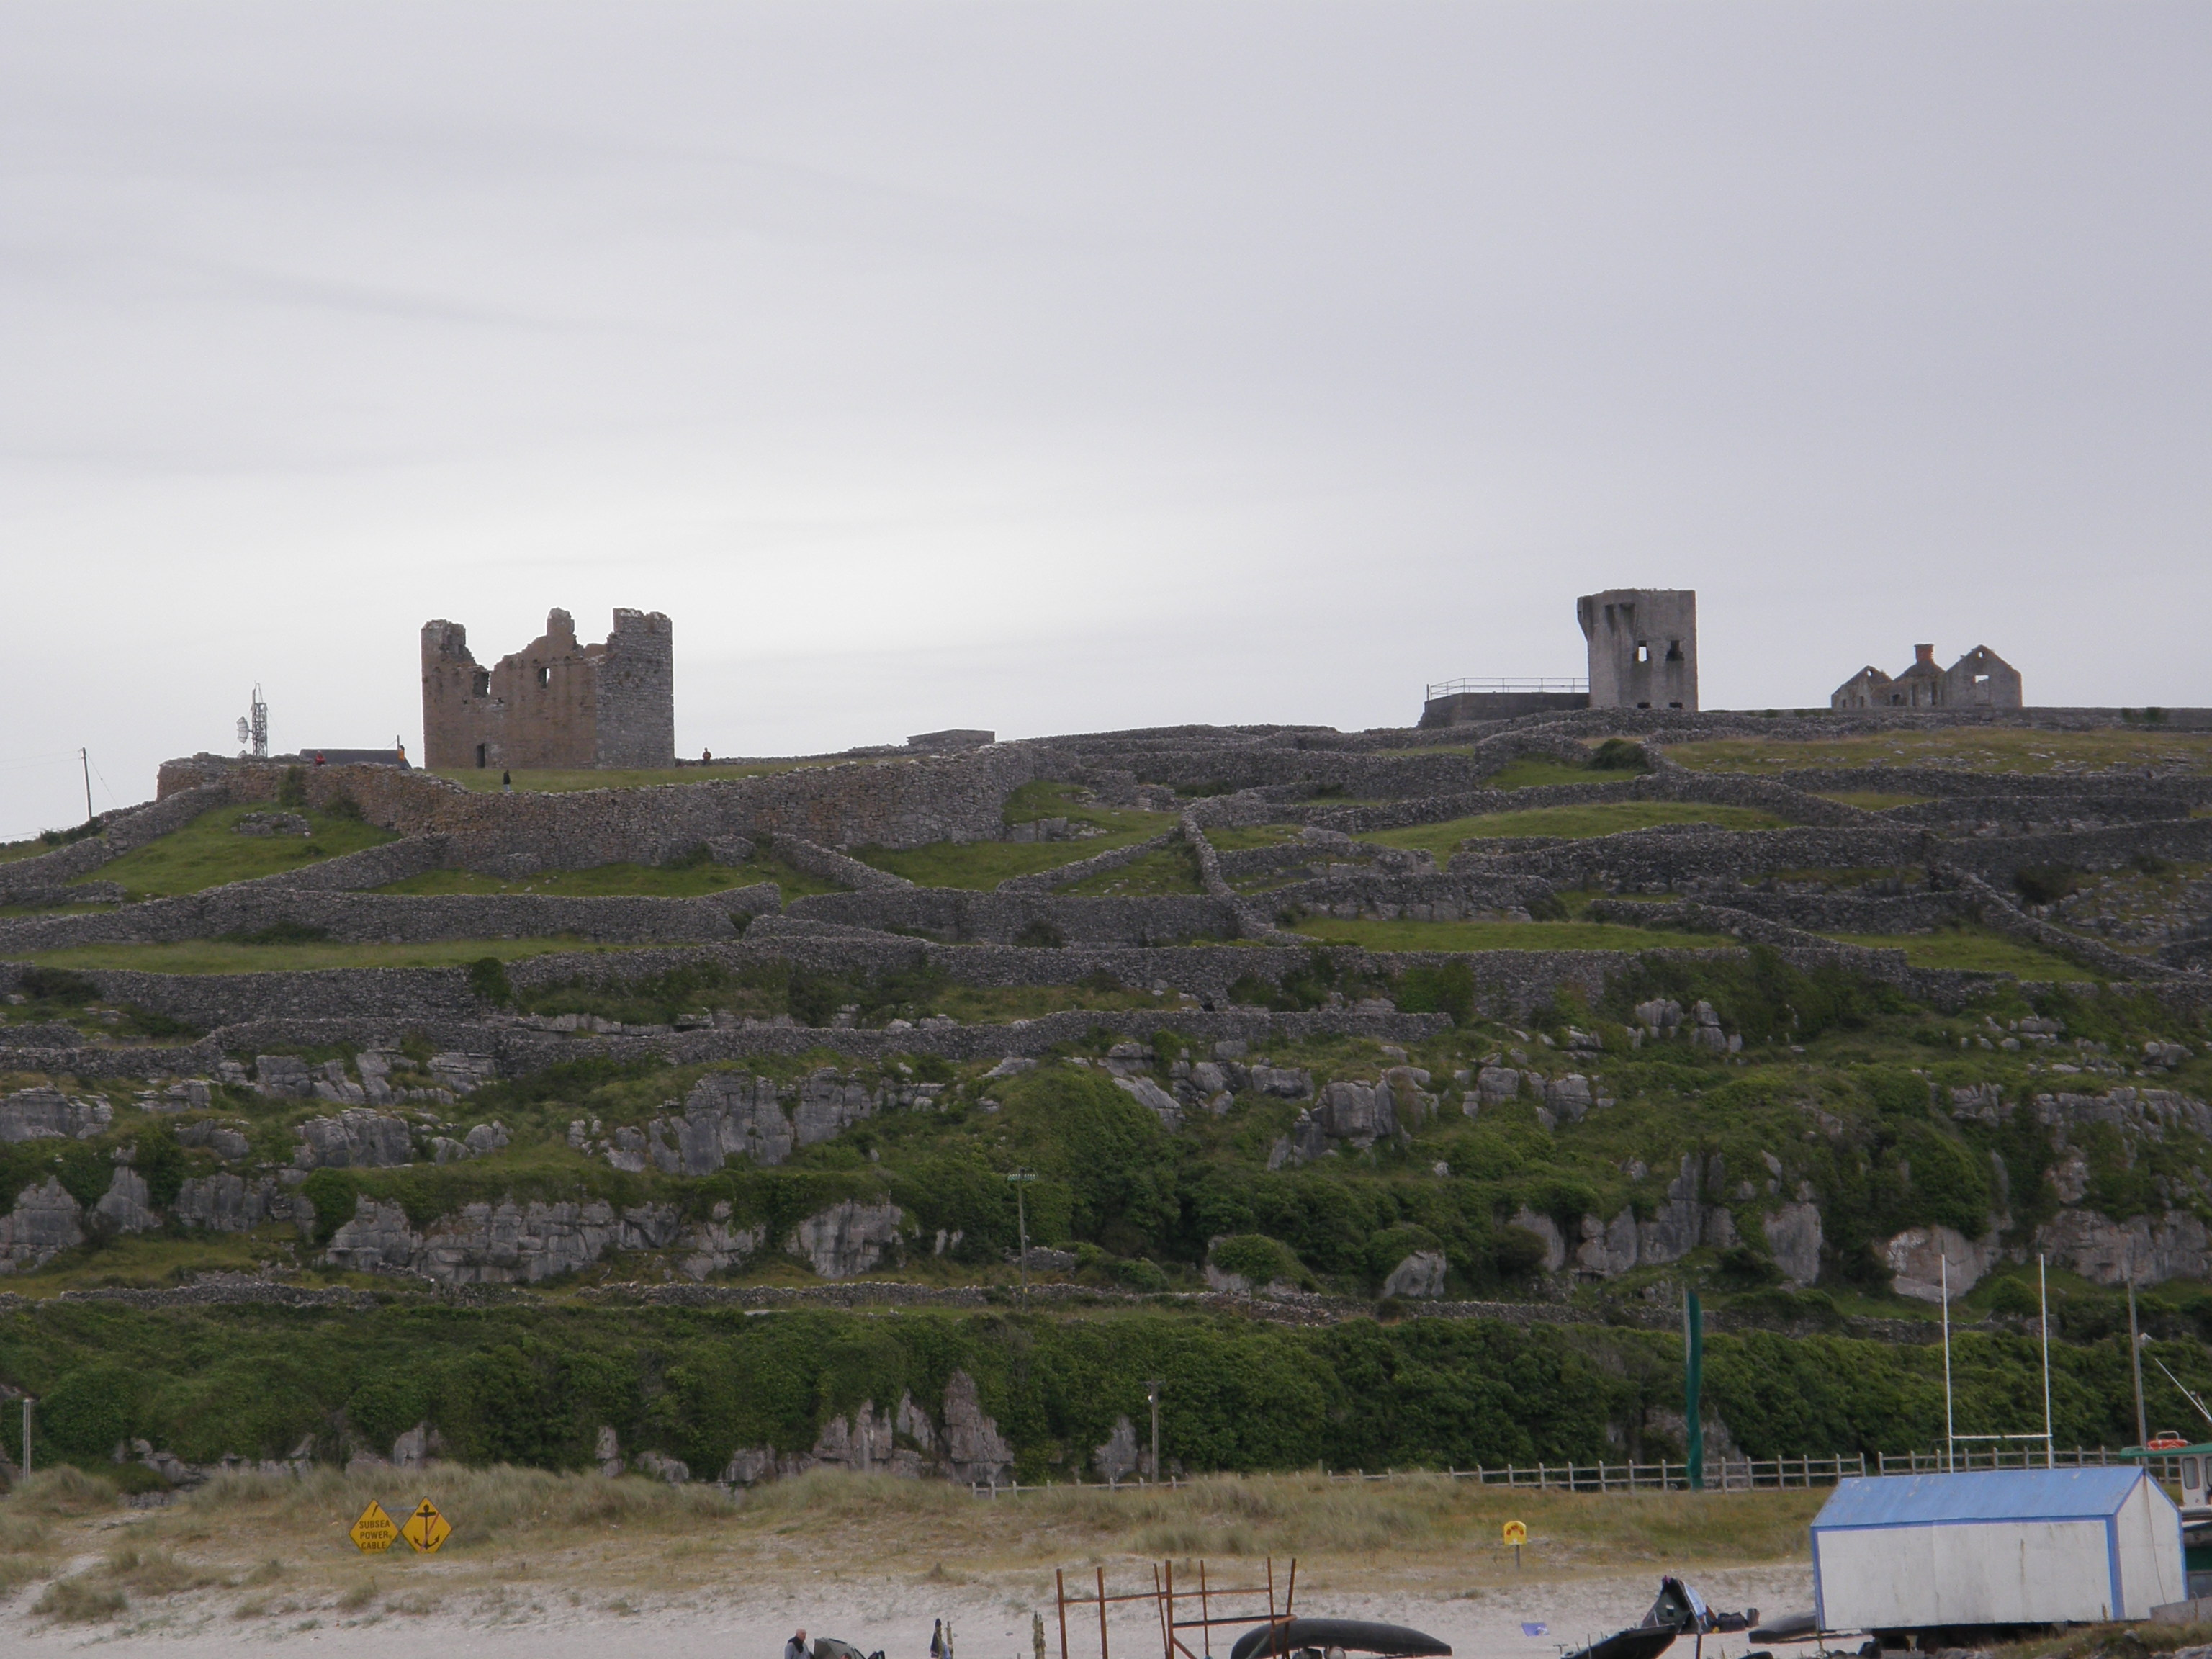 From Inis Oírr pier